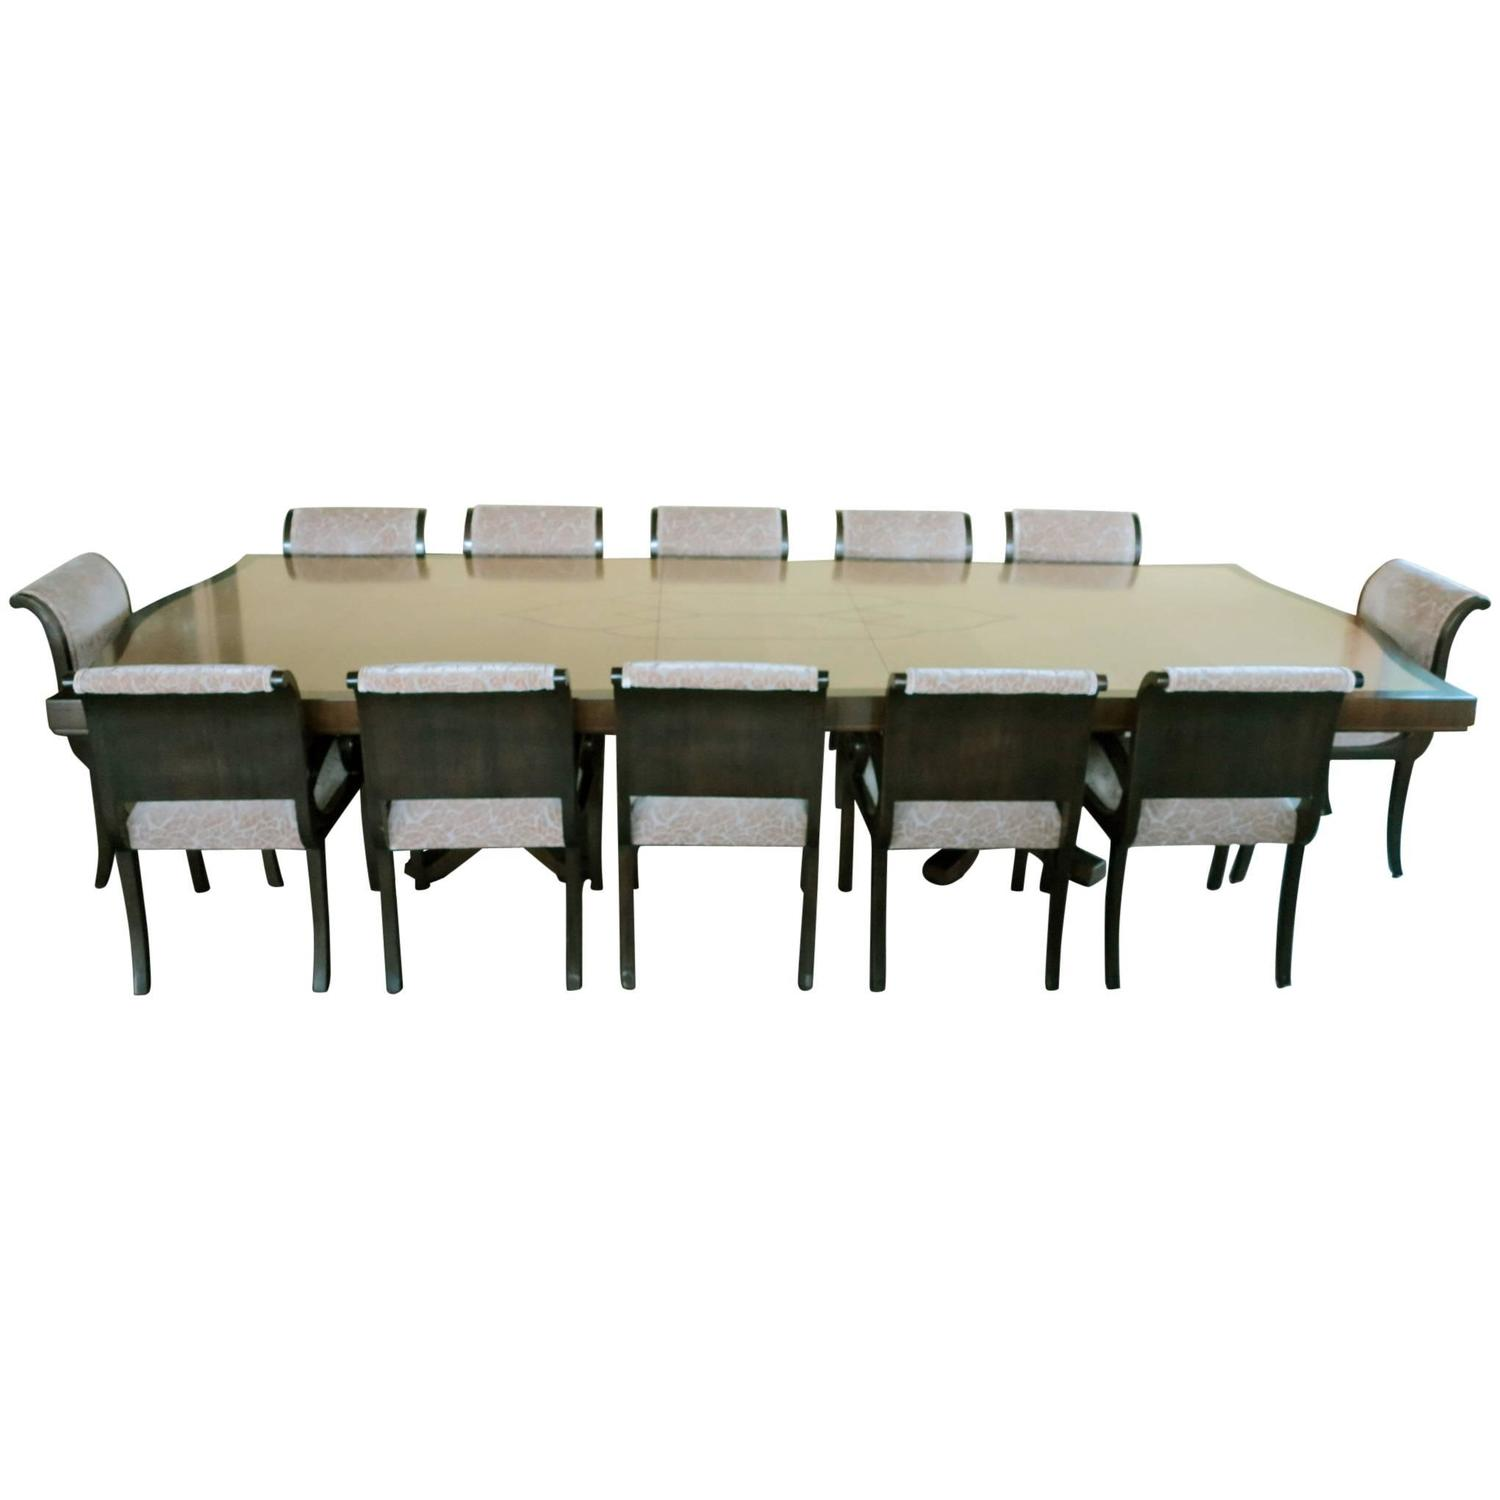 enrique garcel custom made dining table 12 chairs art deco style